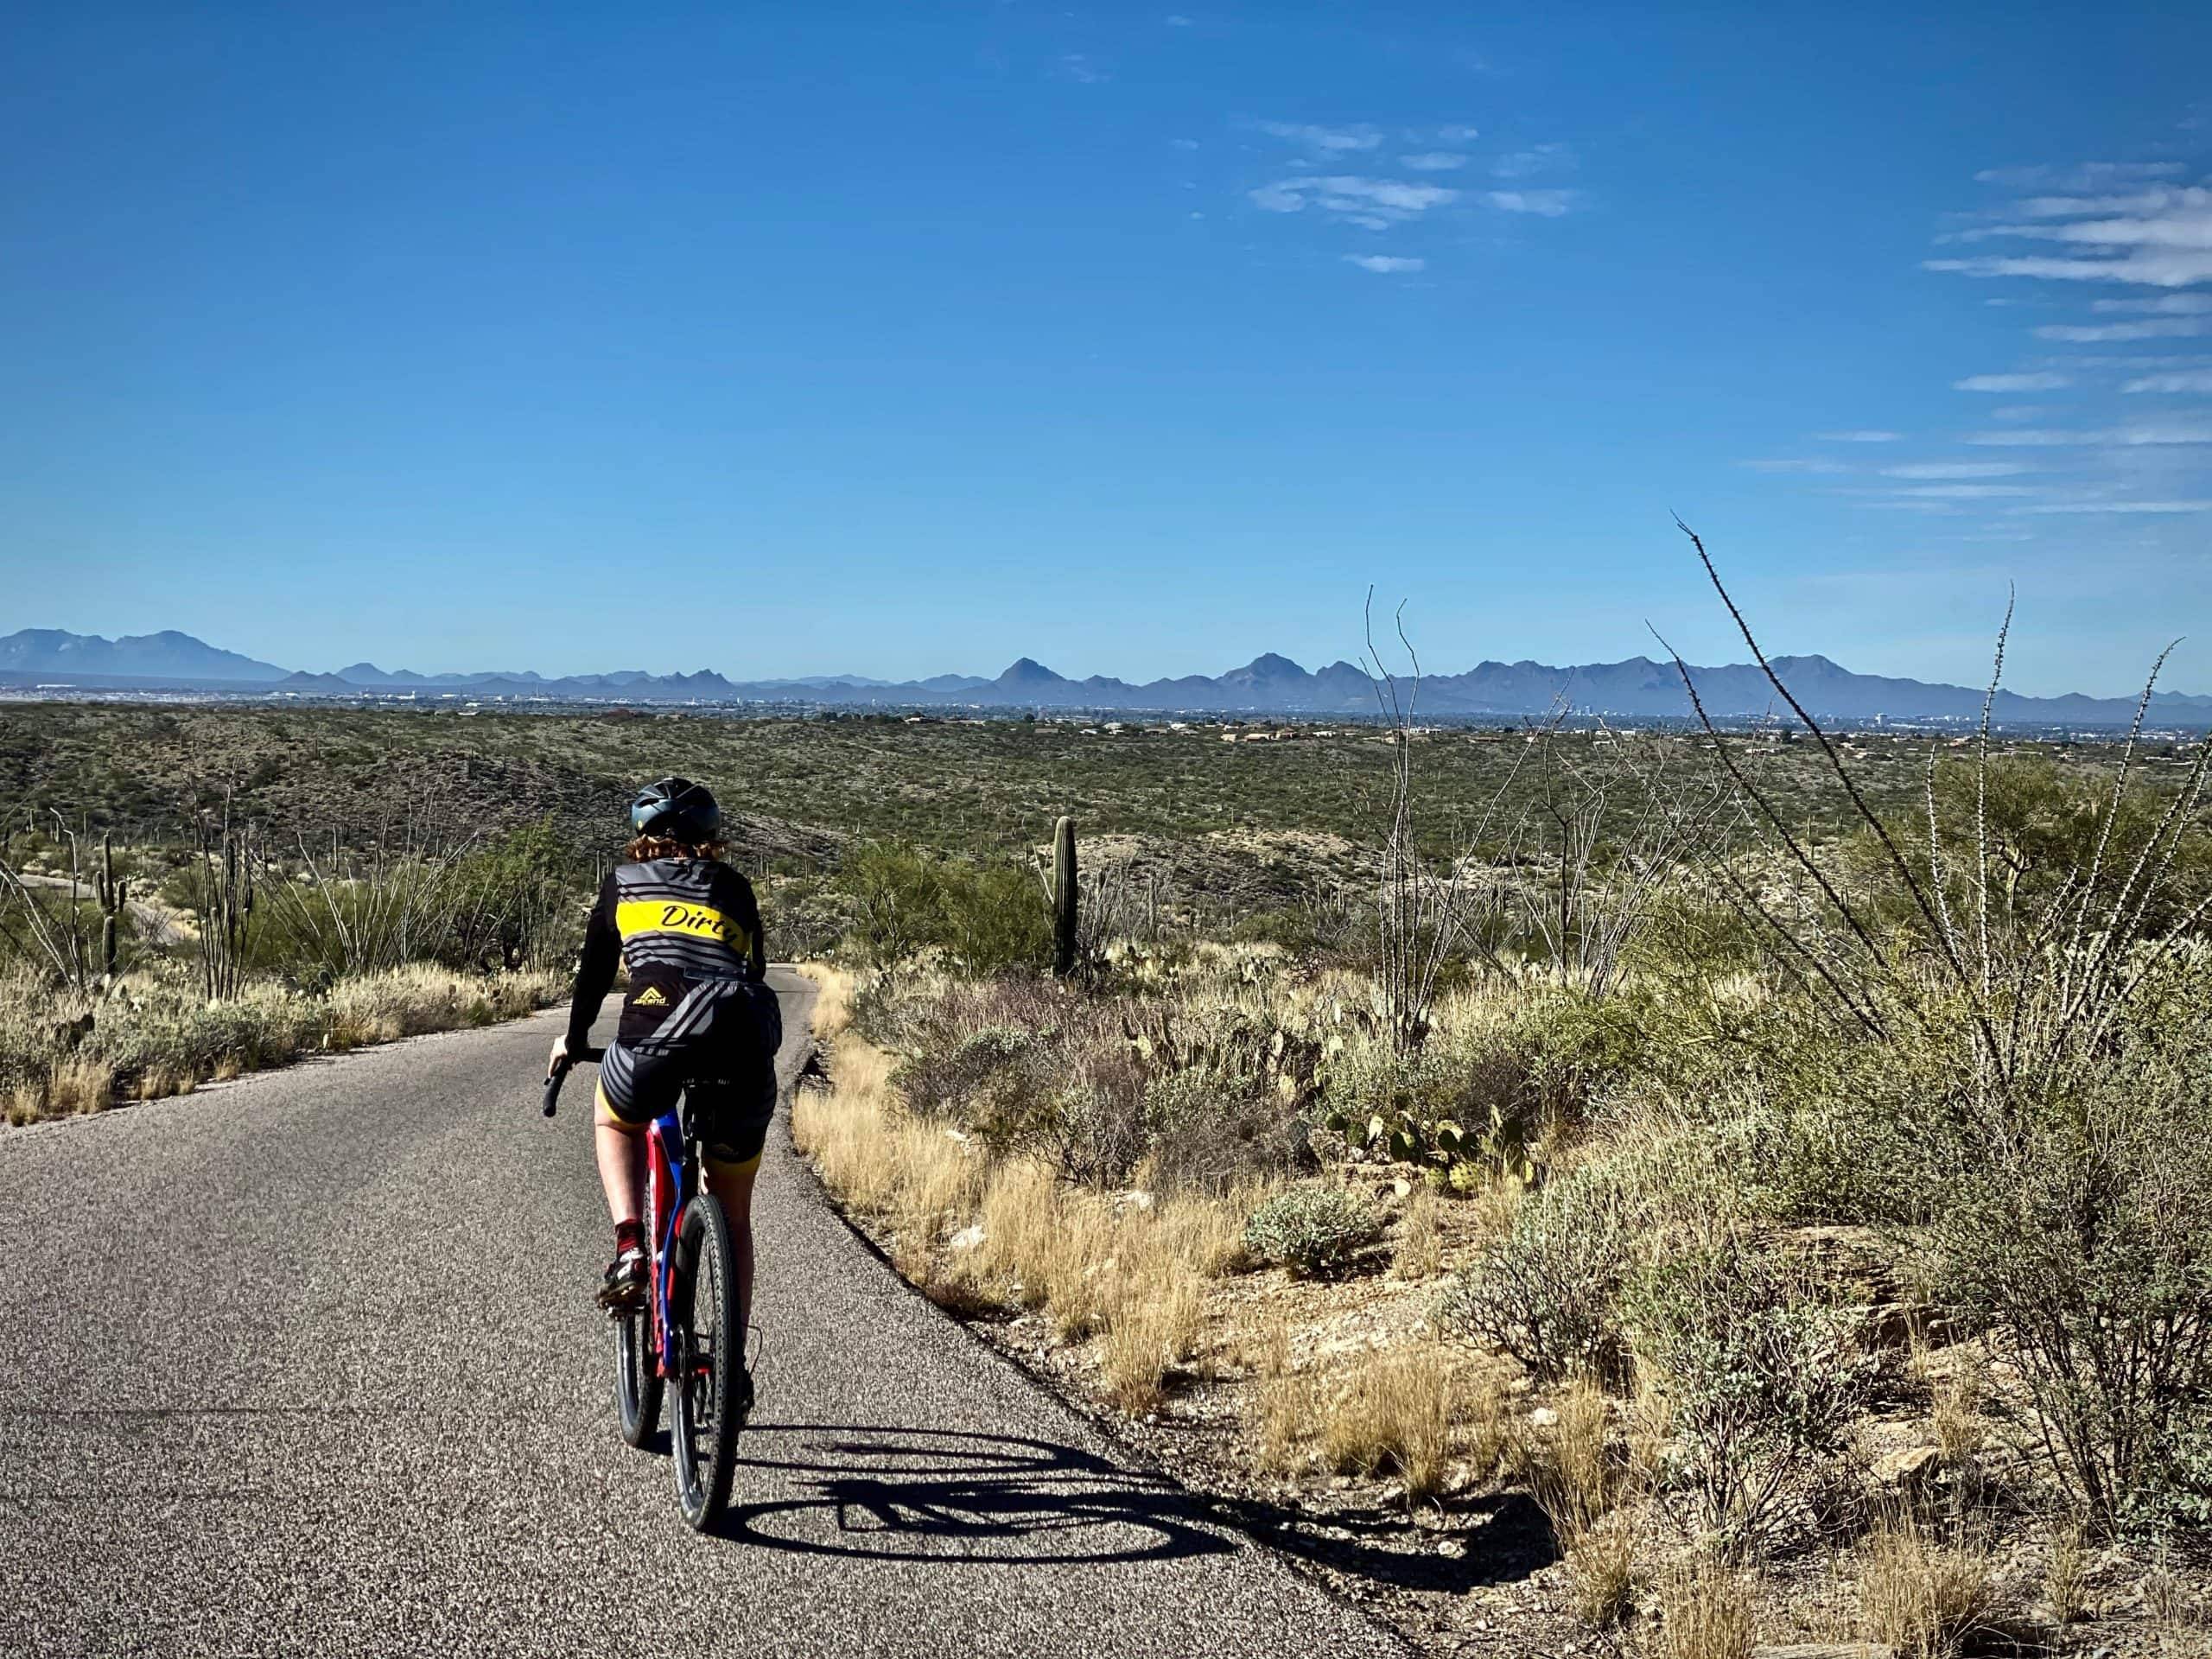 Woman cyclist on paved road in Saguaro National Park (east) overlooking Tucson.